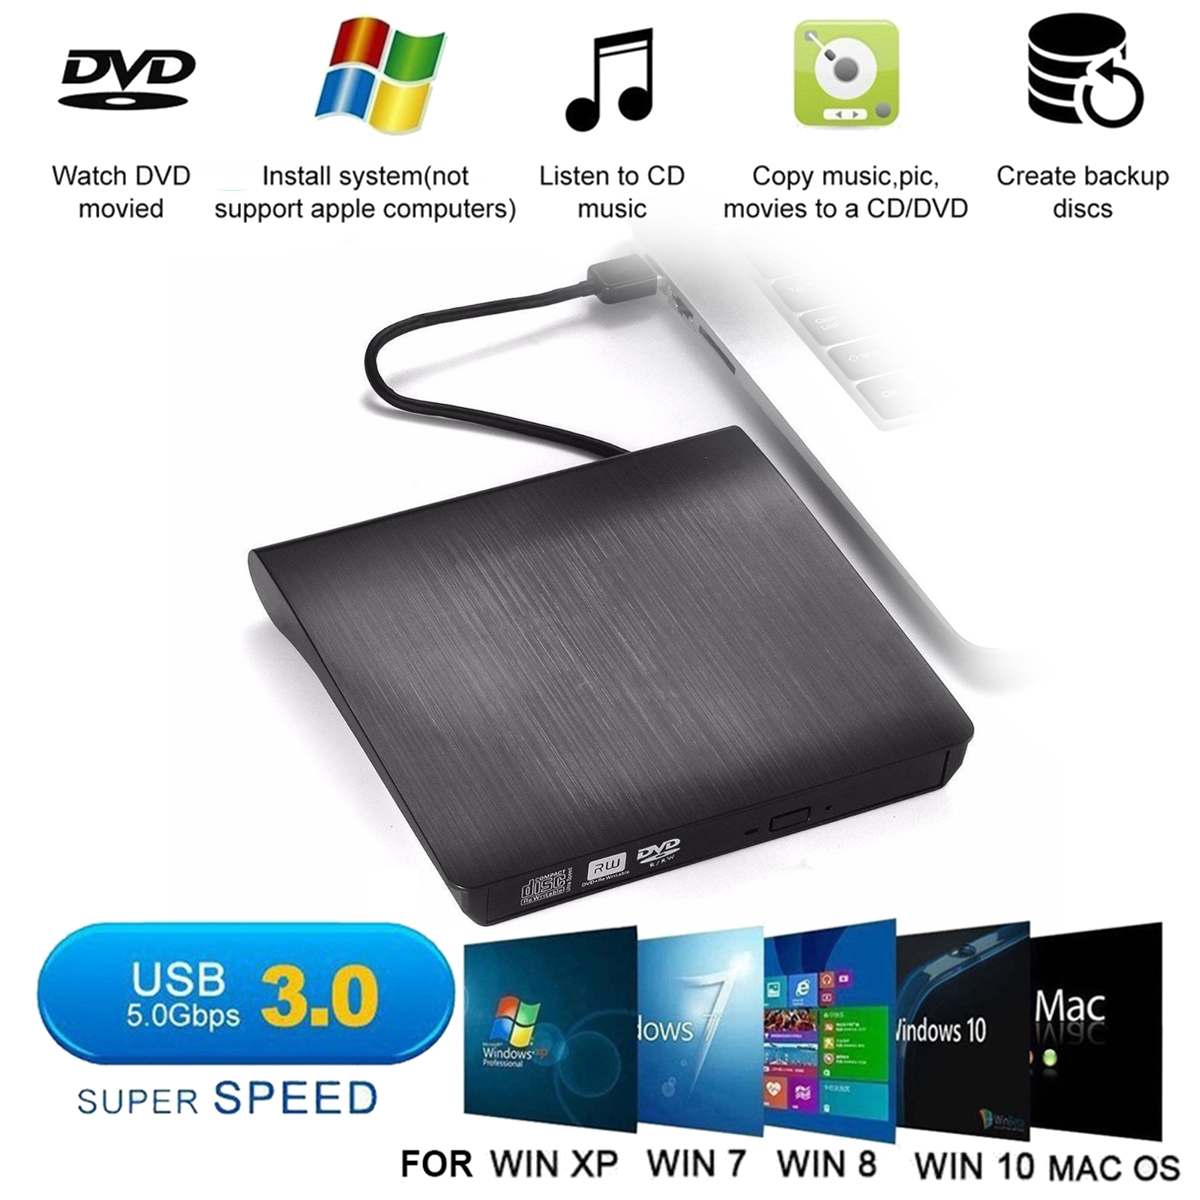 External DVD Drive USB 3.0 Mobile DVD-RW CD-RW Combo Drive Burner Reader Player Recorder Portatil For Laptop